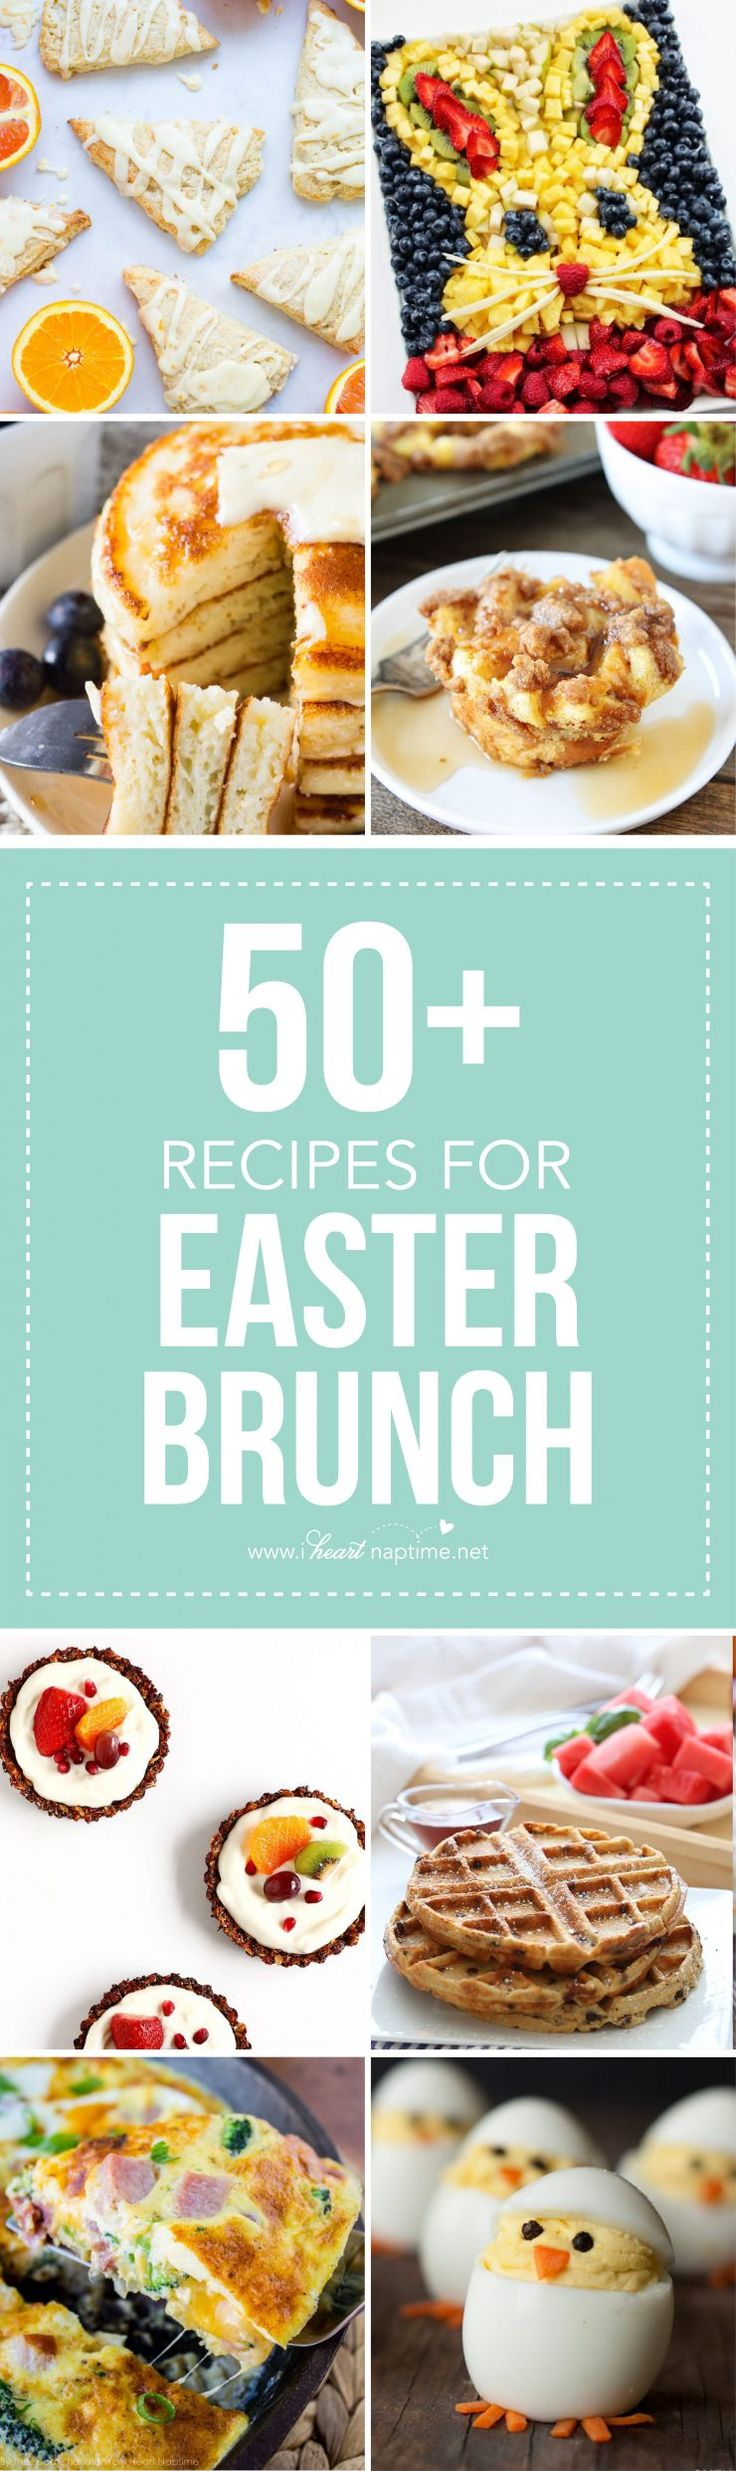 Top 50 Easter Brunch Recipes that will please every guest on your list…delicious recipes for the Easter holiday, the perfect occasion to enjoy your family and welcome spring with a delicious brunch.